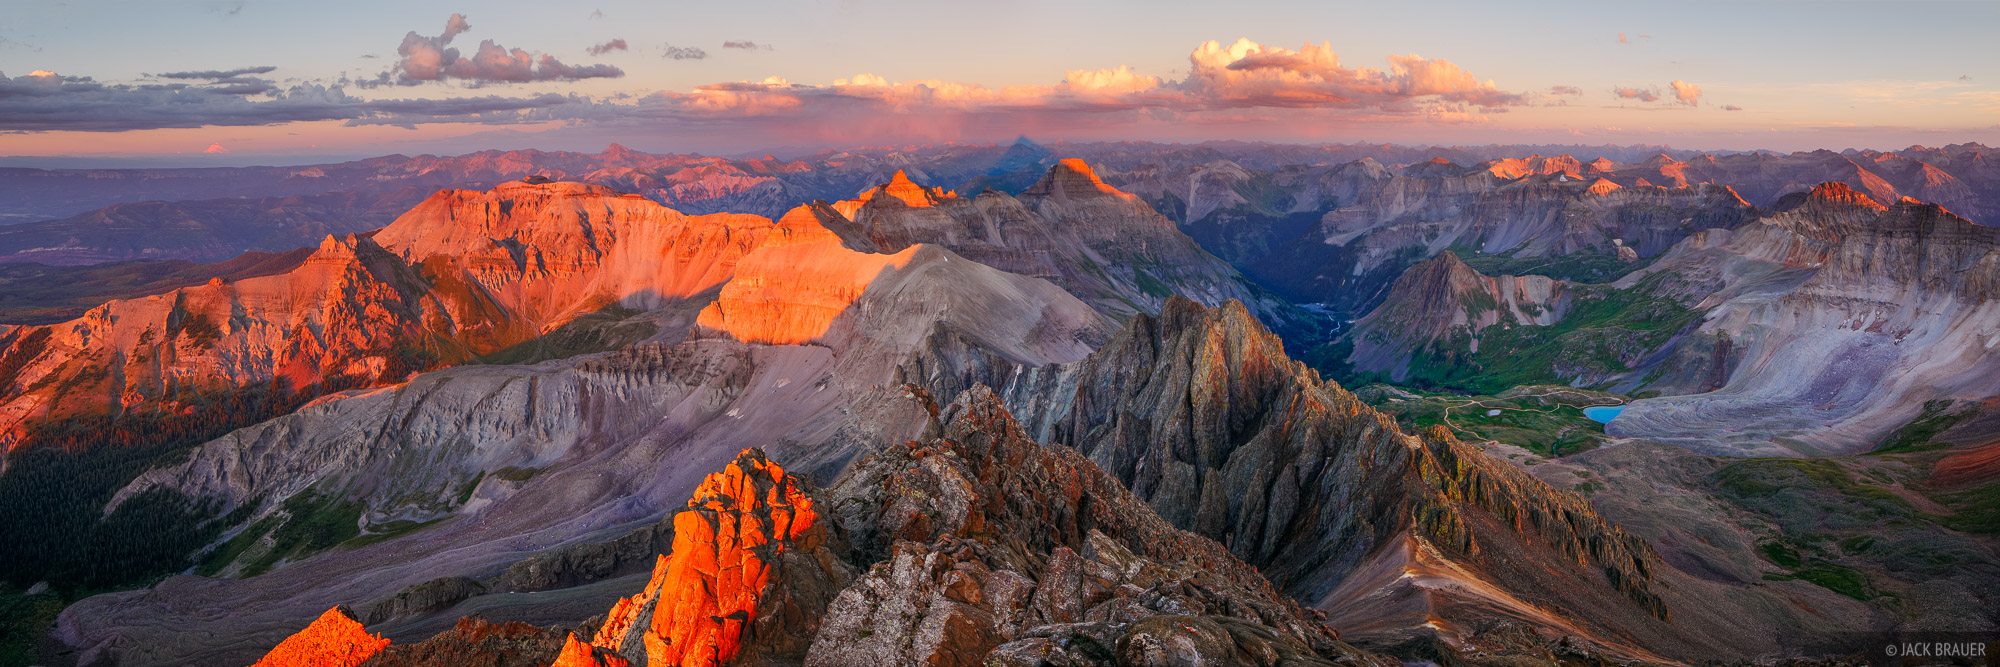 Panoramic view of sunset alpenglow lighting the San Juan Mountains, as seen from the 14,150ft. summit of Mt. Sneffels. ...